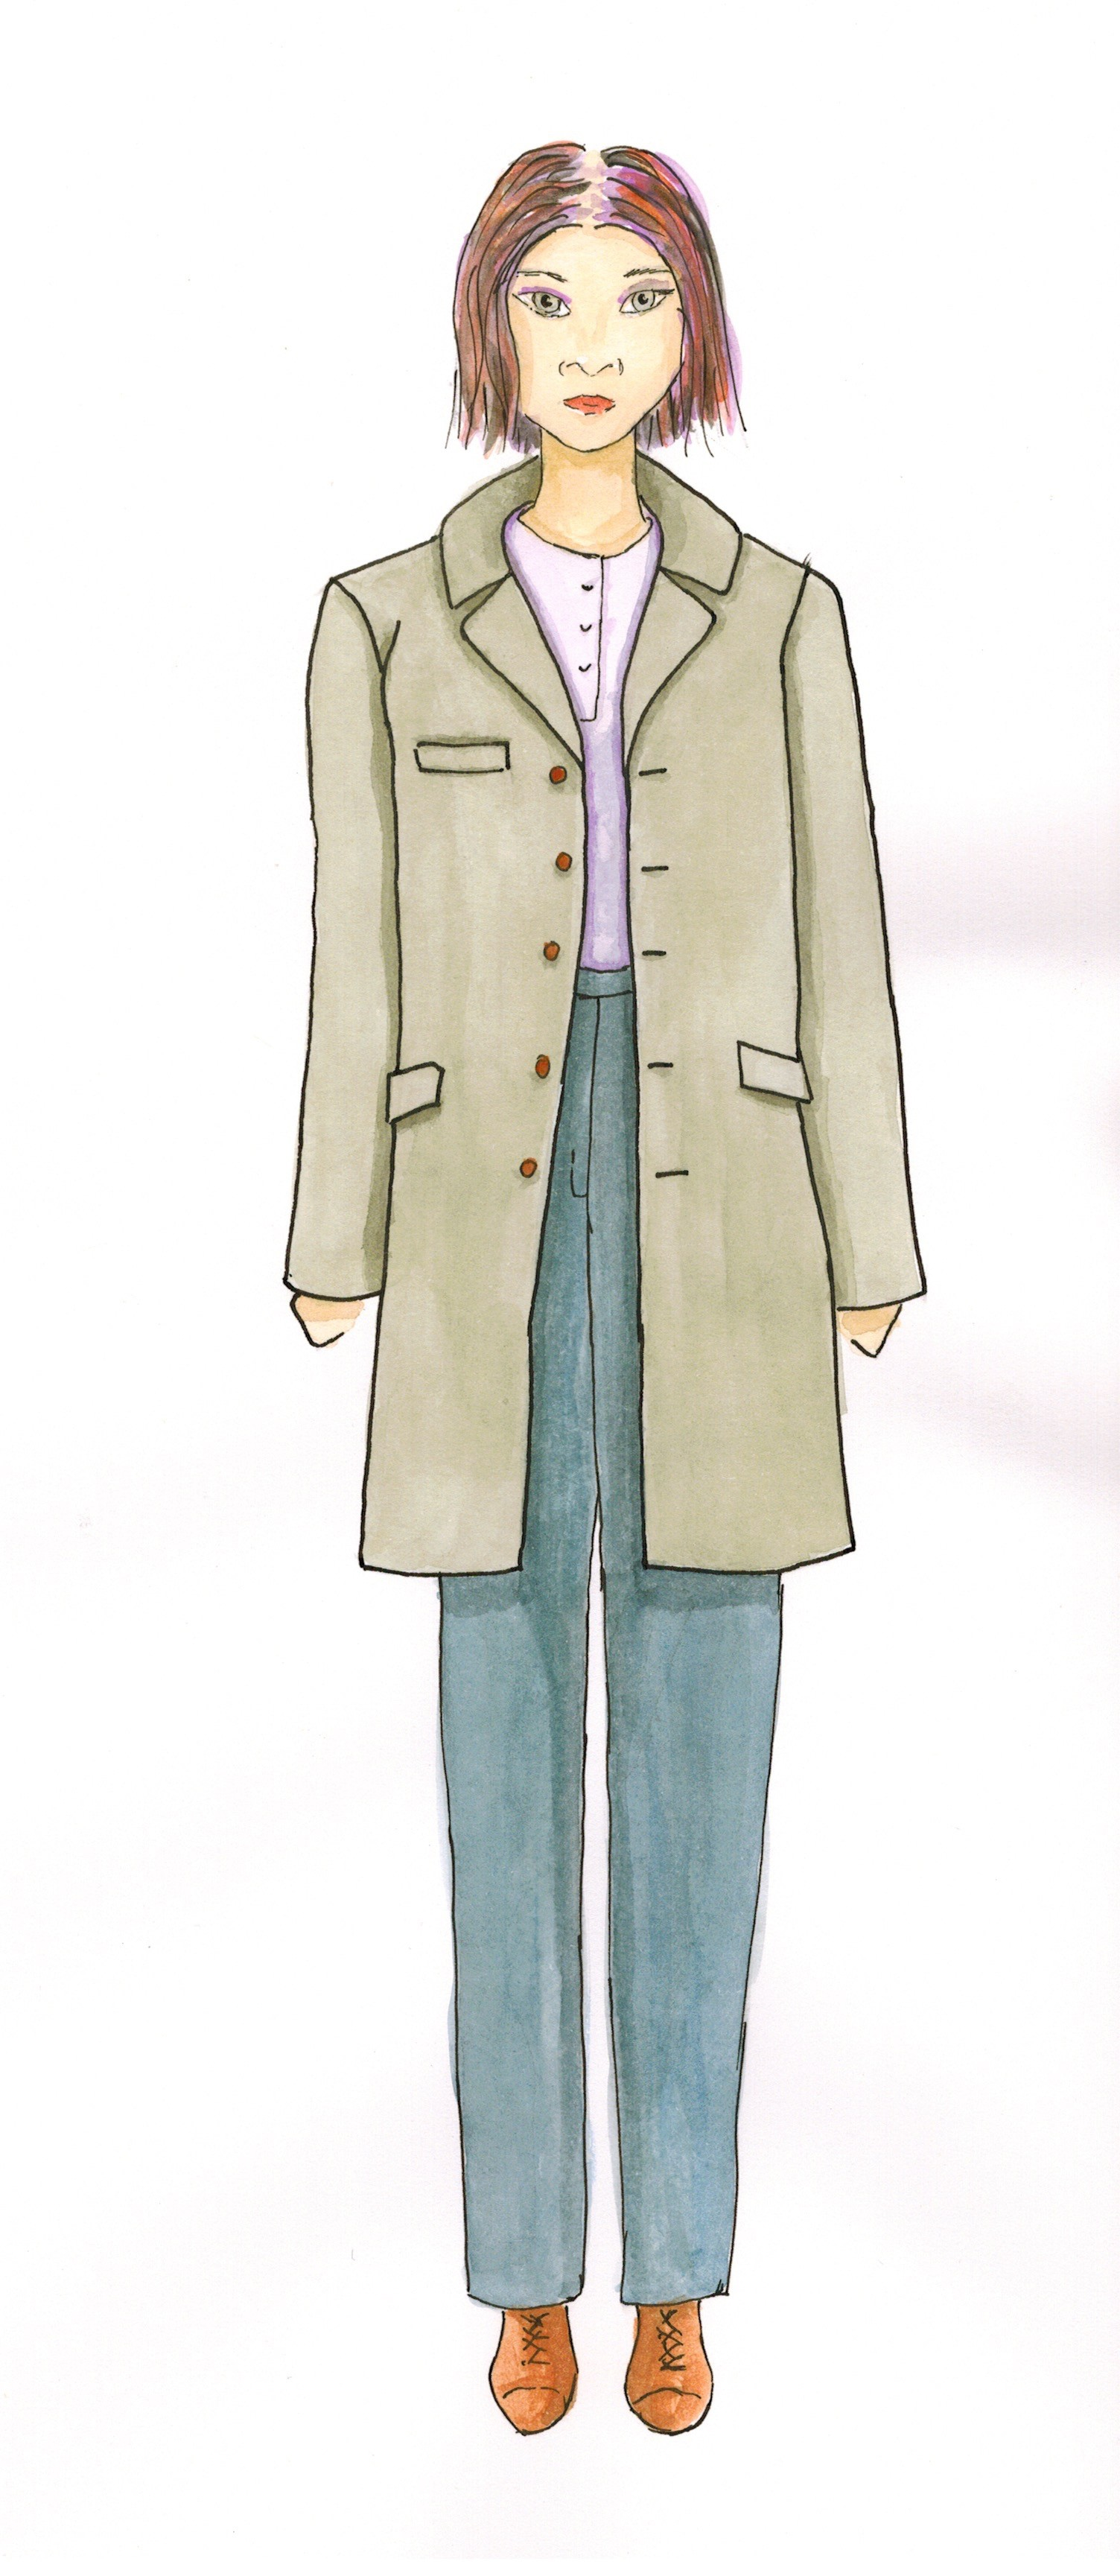 Meris mullaley fashion watercolor green jacket